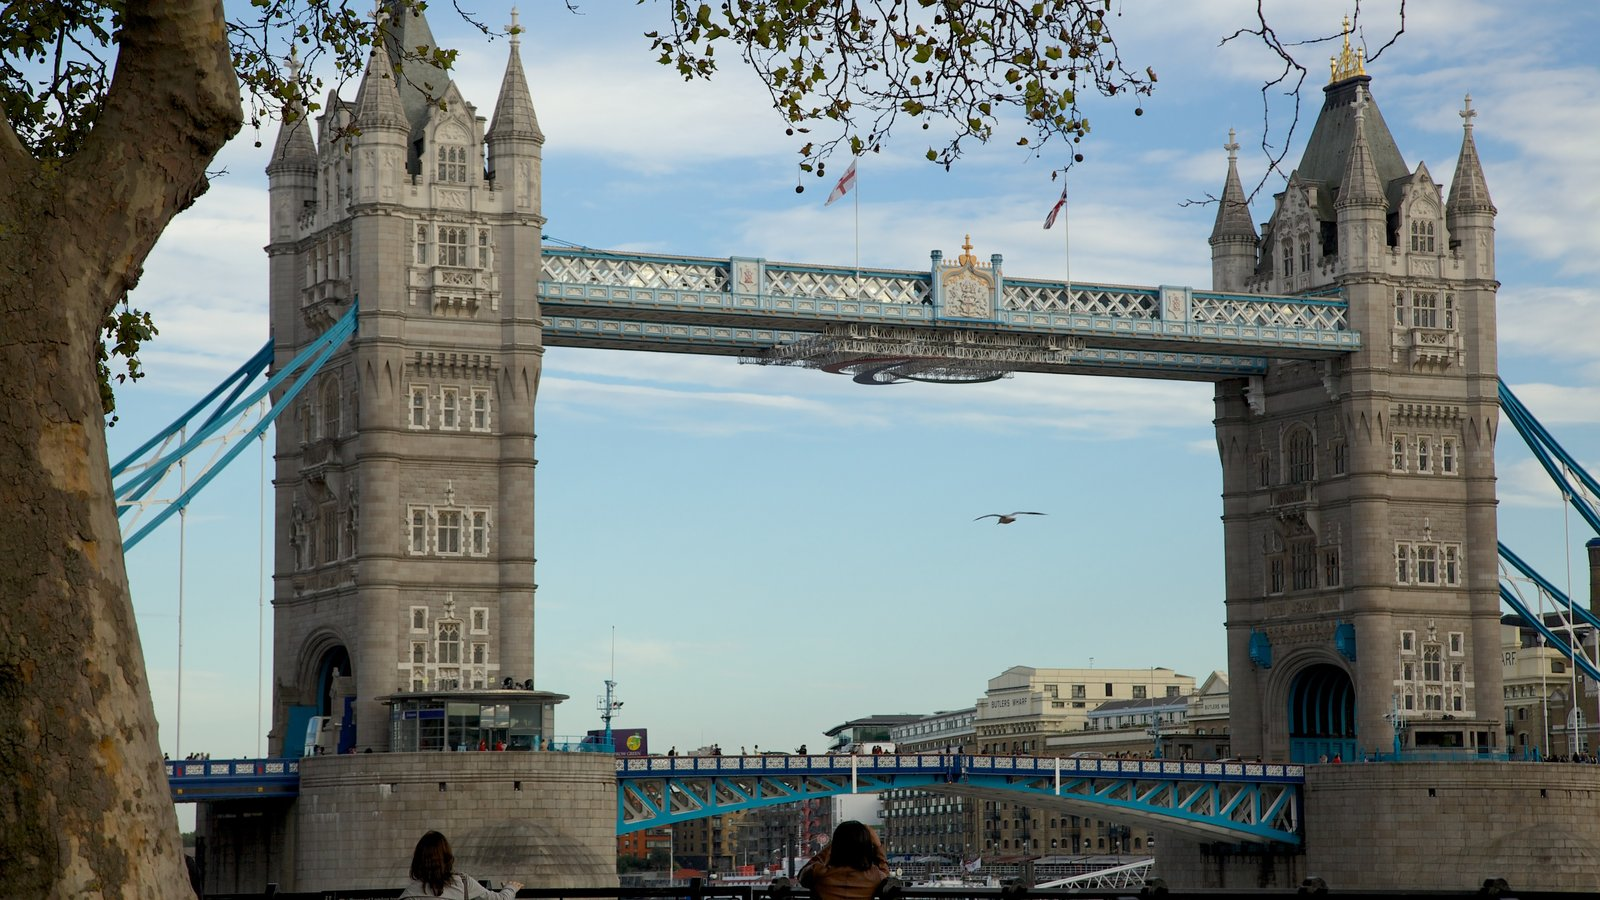 Tower Bridge which includes a bridge, a city and heritage architecture